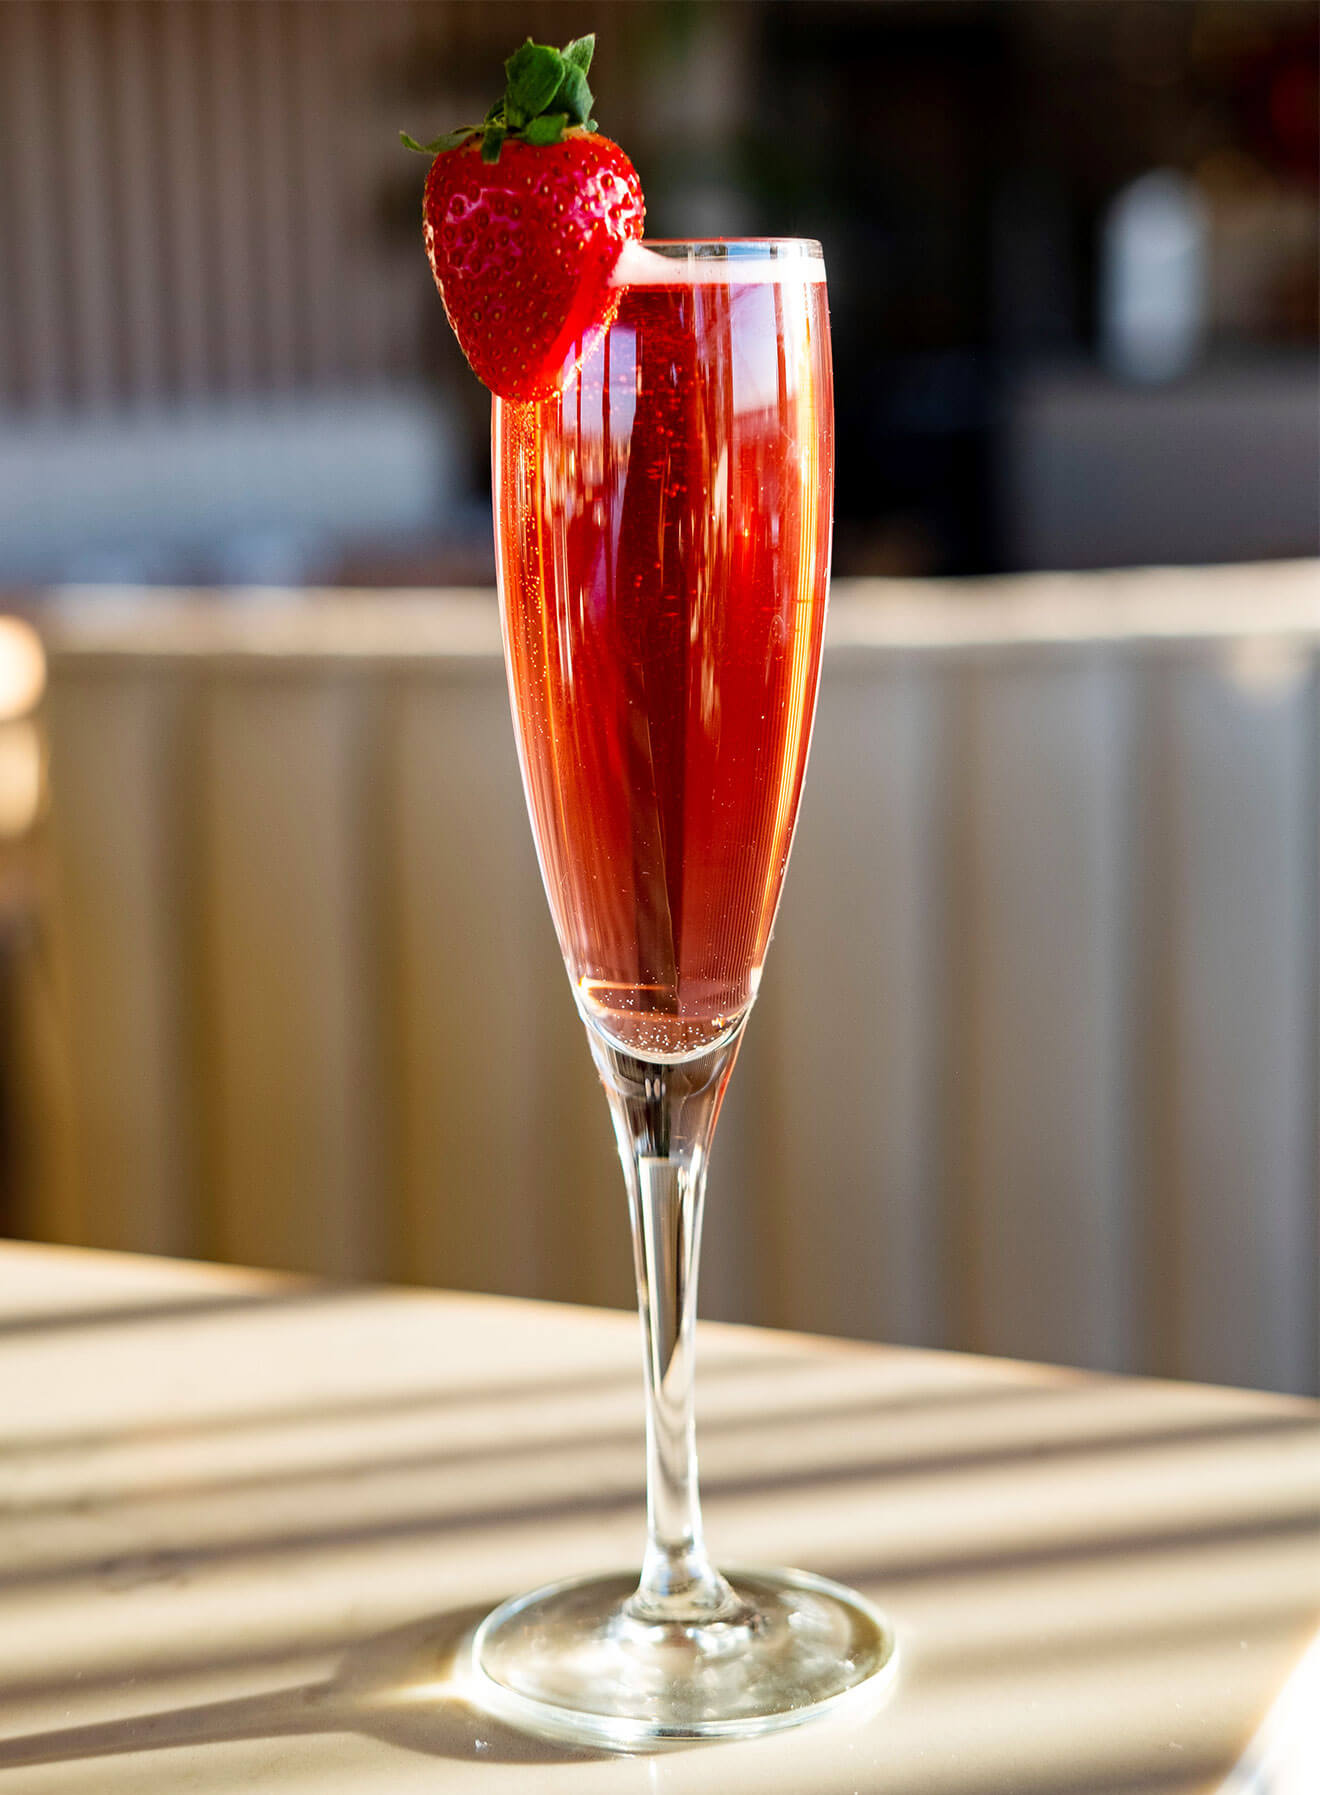 Los Amores, cocktail in champagne glass with strawberry garnish